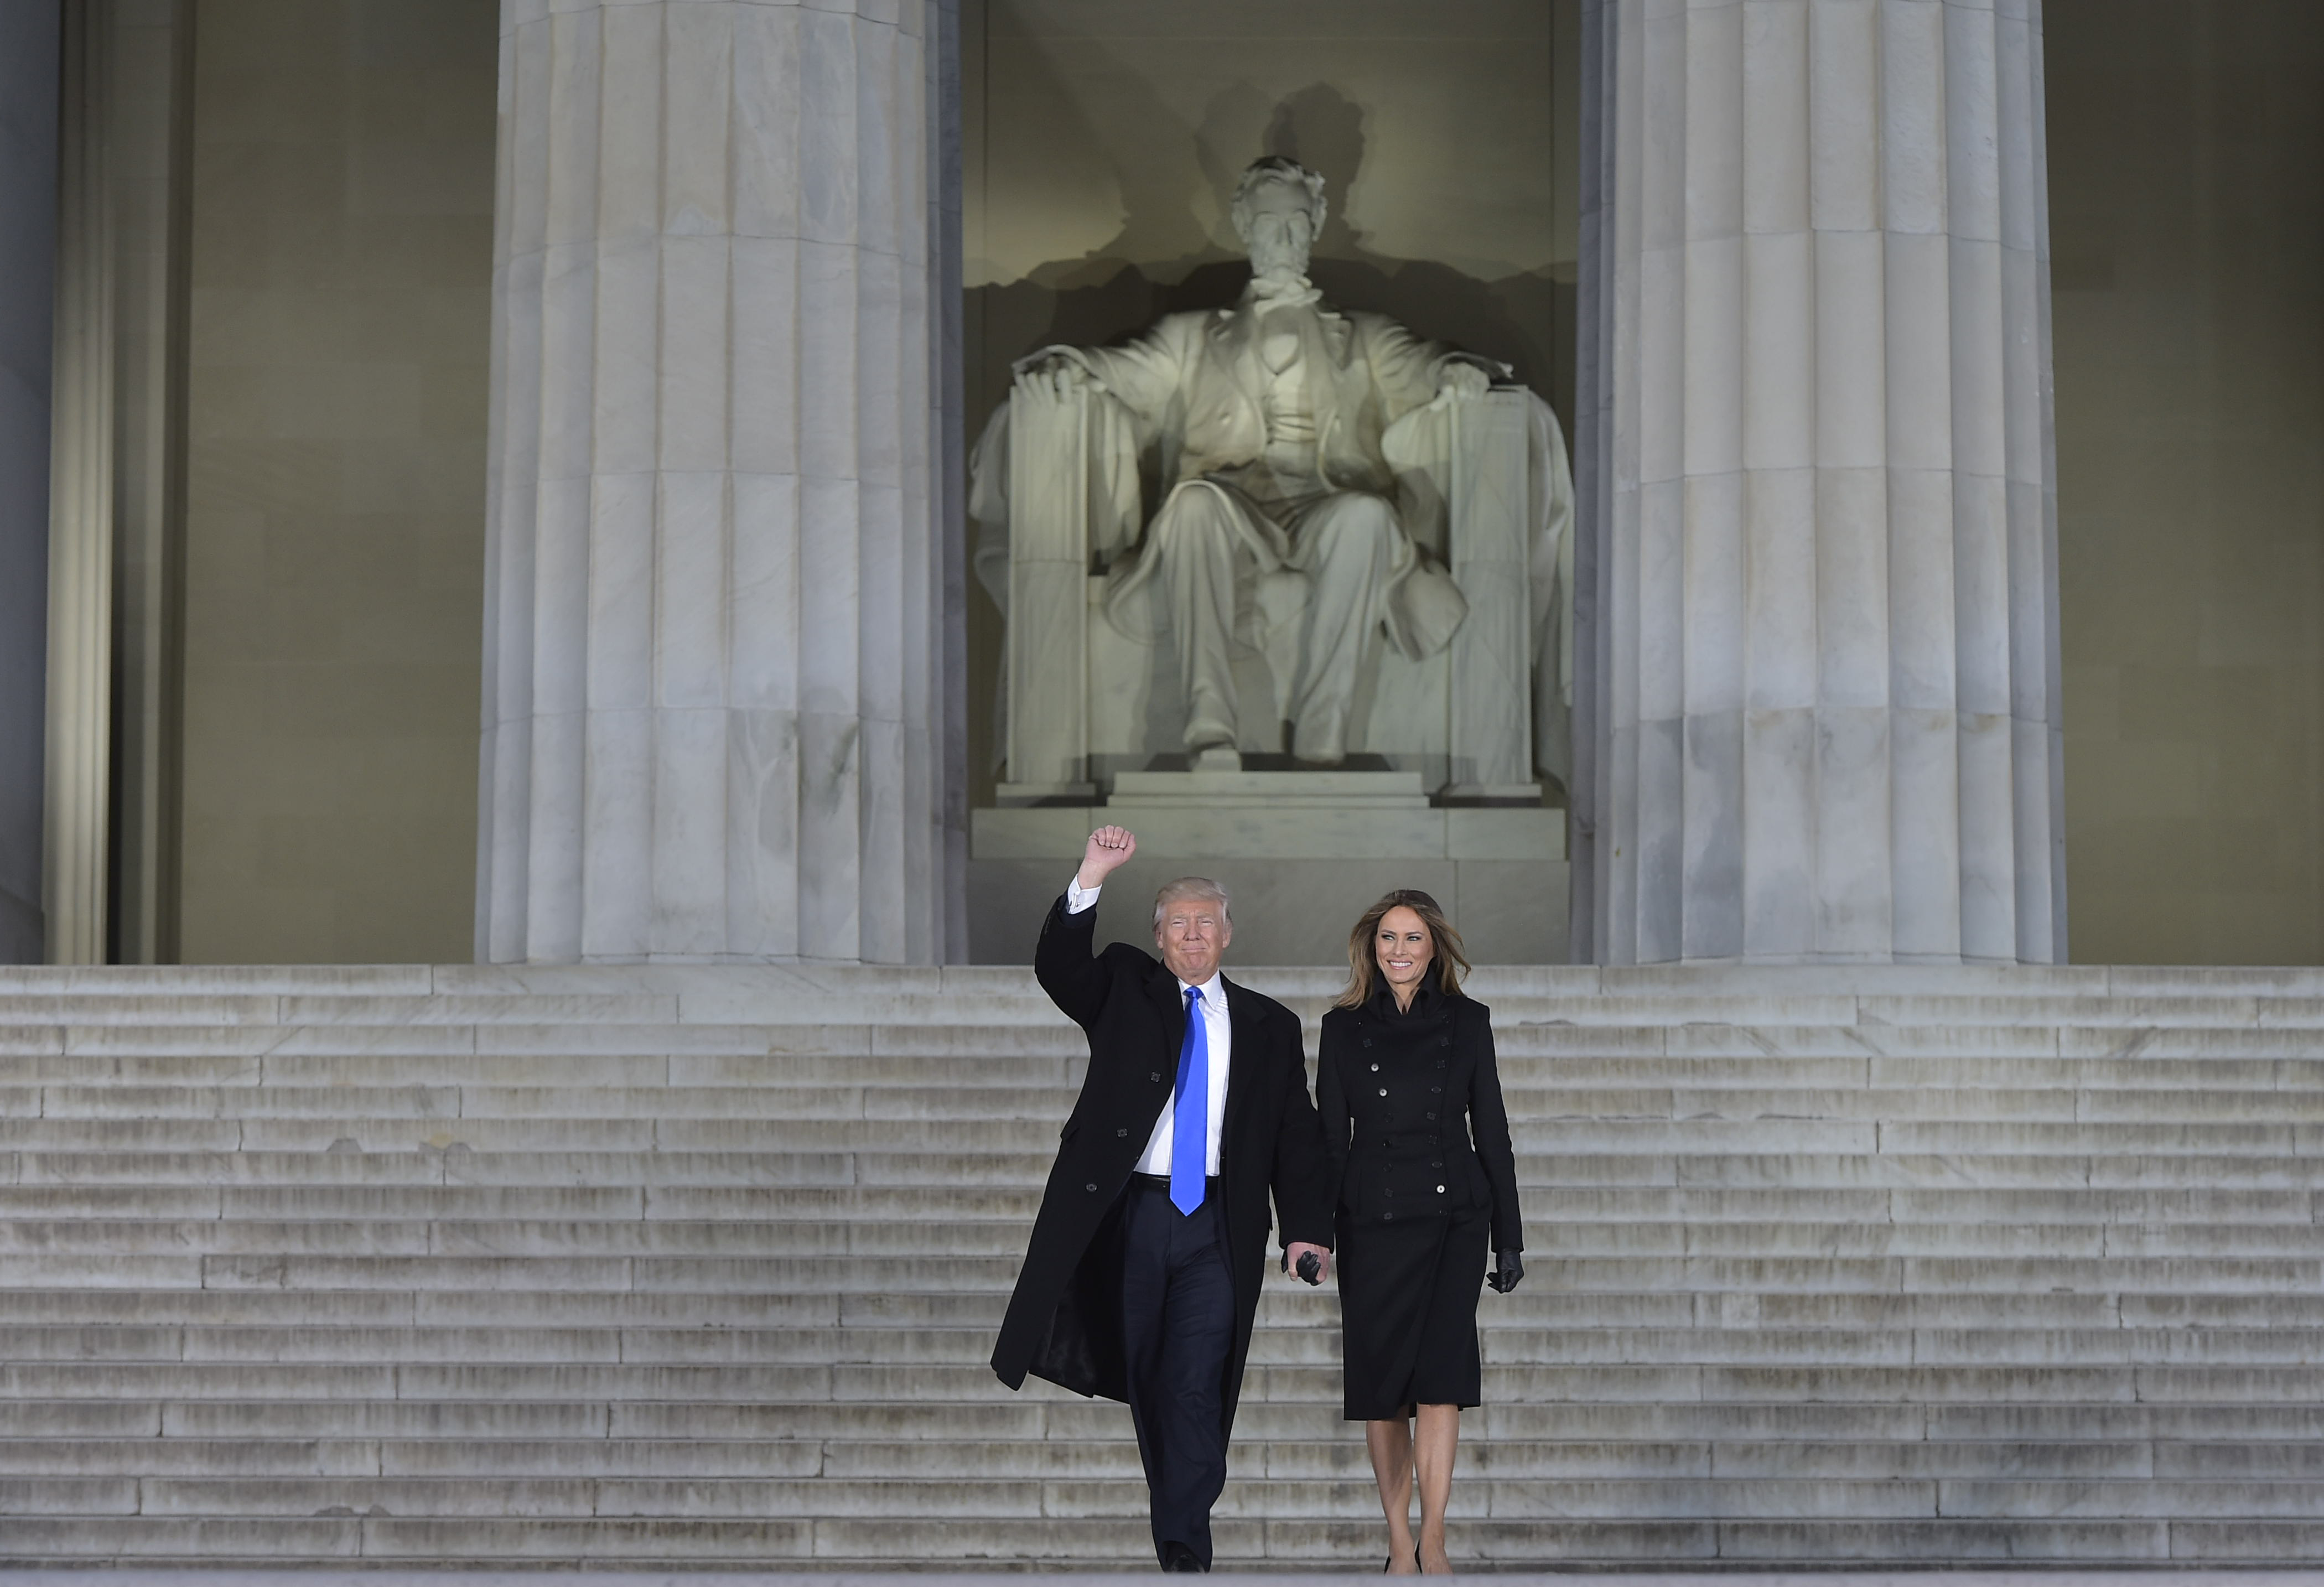 President-elect Donald Trump and his wife Melania arrive to attend an inauguration concert at the Lincoln Memorial in Washington, D.C., on Jan. 19, 2017.